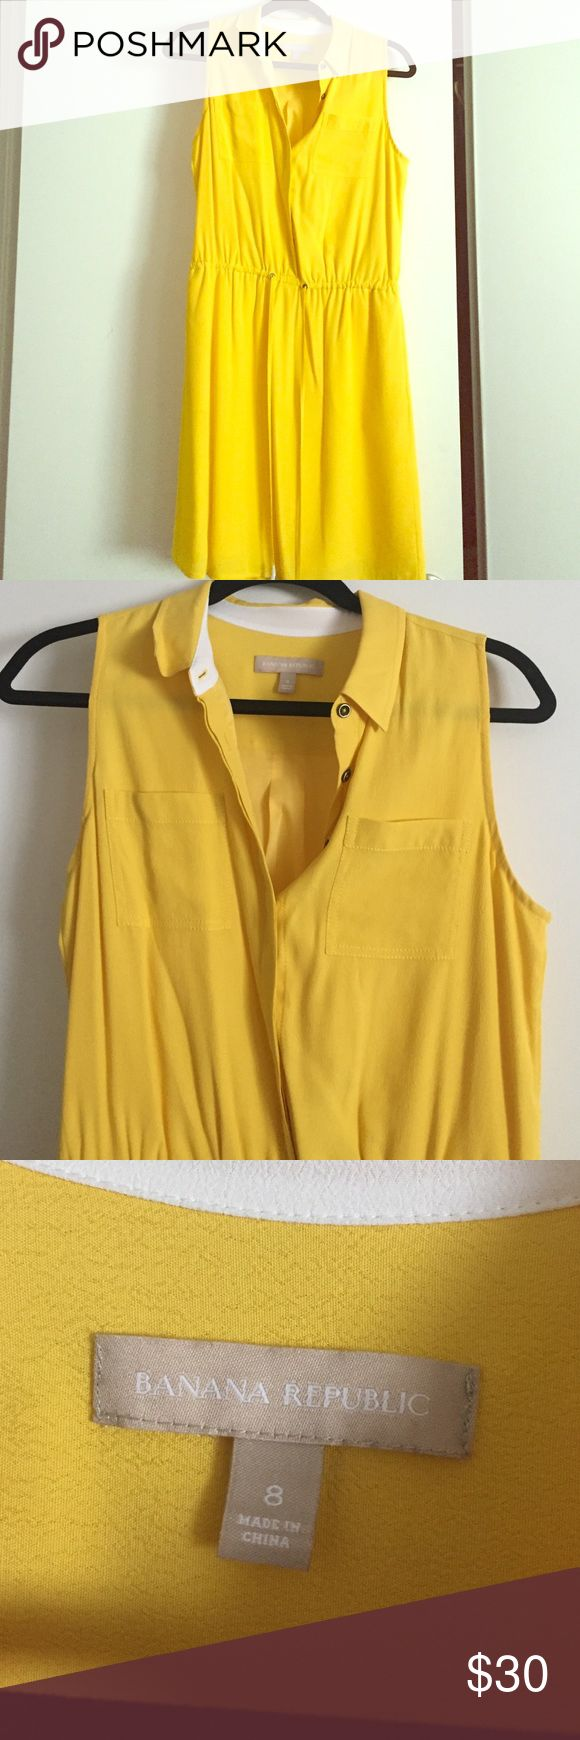 Lightweight sleeveless yellow BR dress Light and sleeveless yellow dress with a white trimmed collar, drawstring on the waist with pockets. Great for work that you can accessorize with a blazer and wedges or heels...you can even wear on a shopping trip on the weekend or to a party! Worn only once and is ready to make a home in a new closet 🤗 Banana Republic Dresses